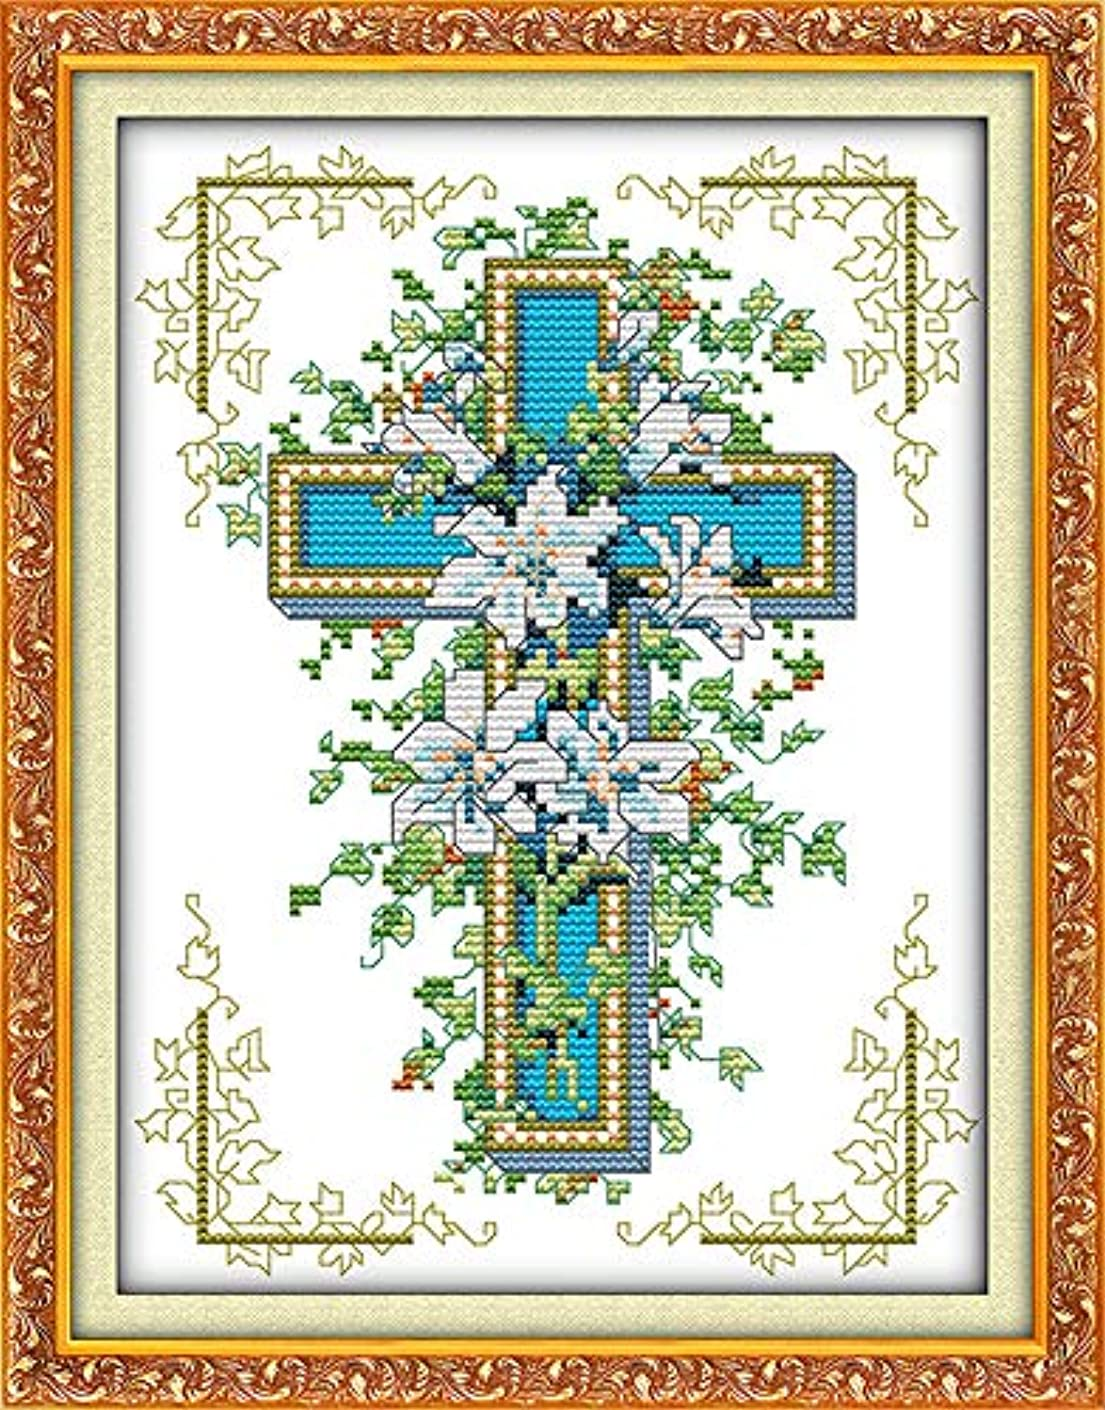 Cross Stitch Stamped Kits Pre-Printed Cross-Stitching Starter Patterns for Beginner Kids or Adults, Embroidery Needlepoint Kits The Cross Lily